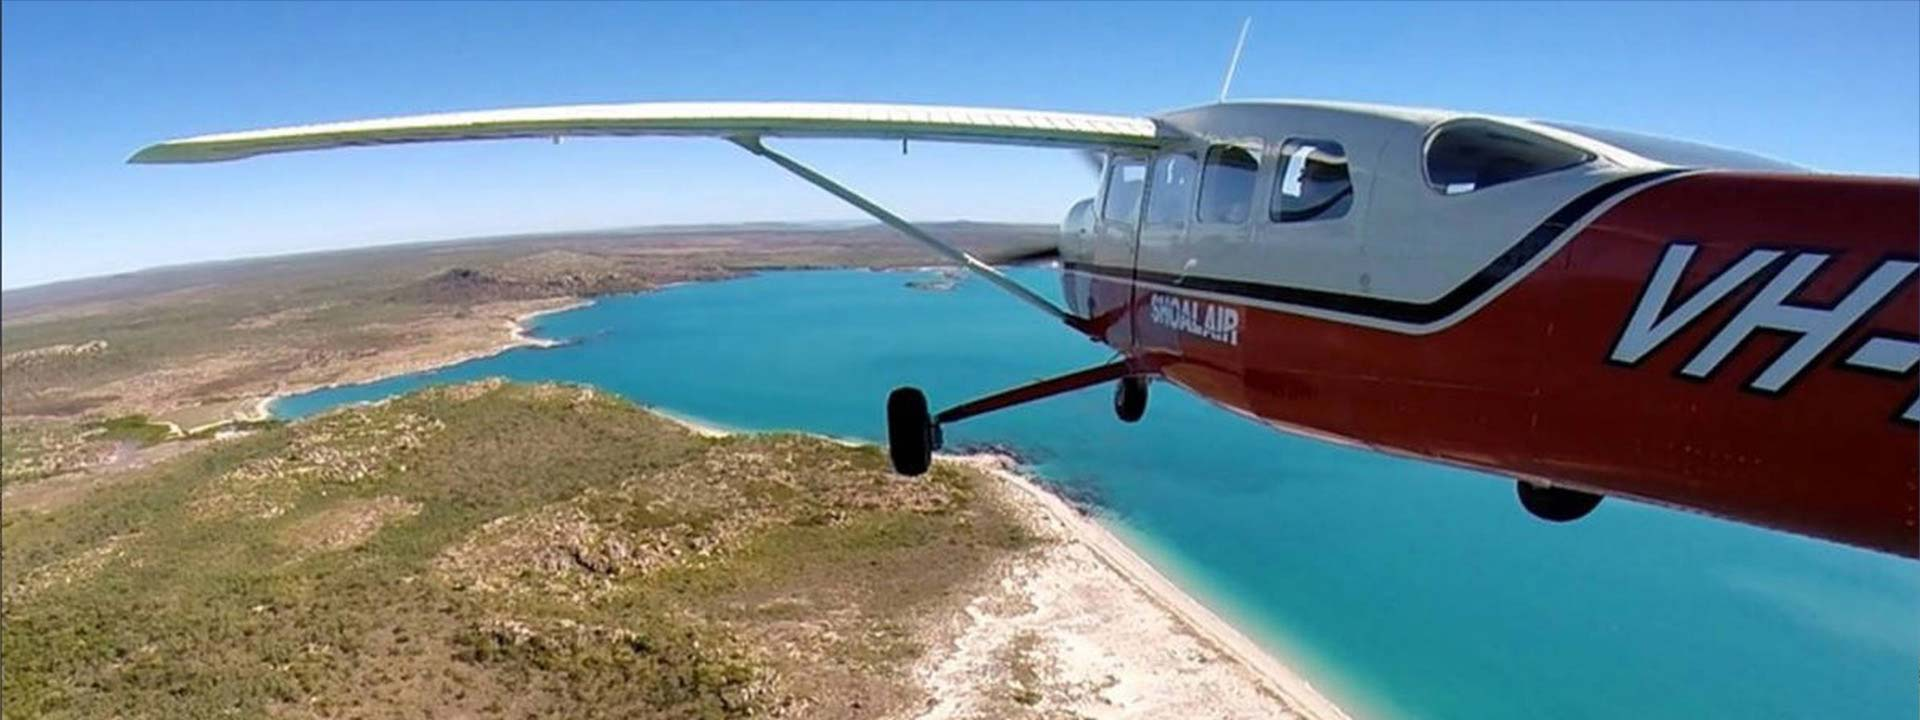 Experience a scenic air tour with Kingfisher Tours